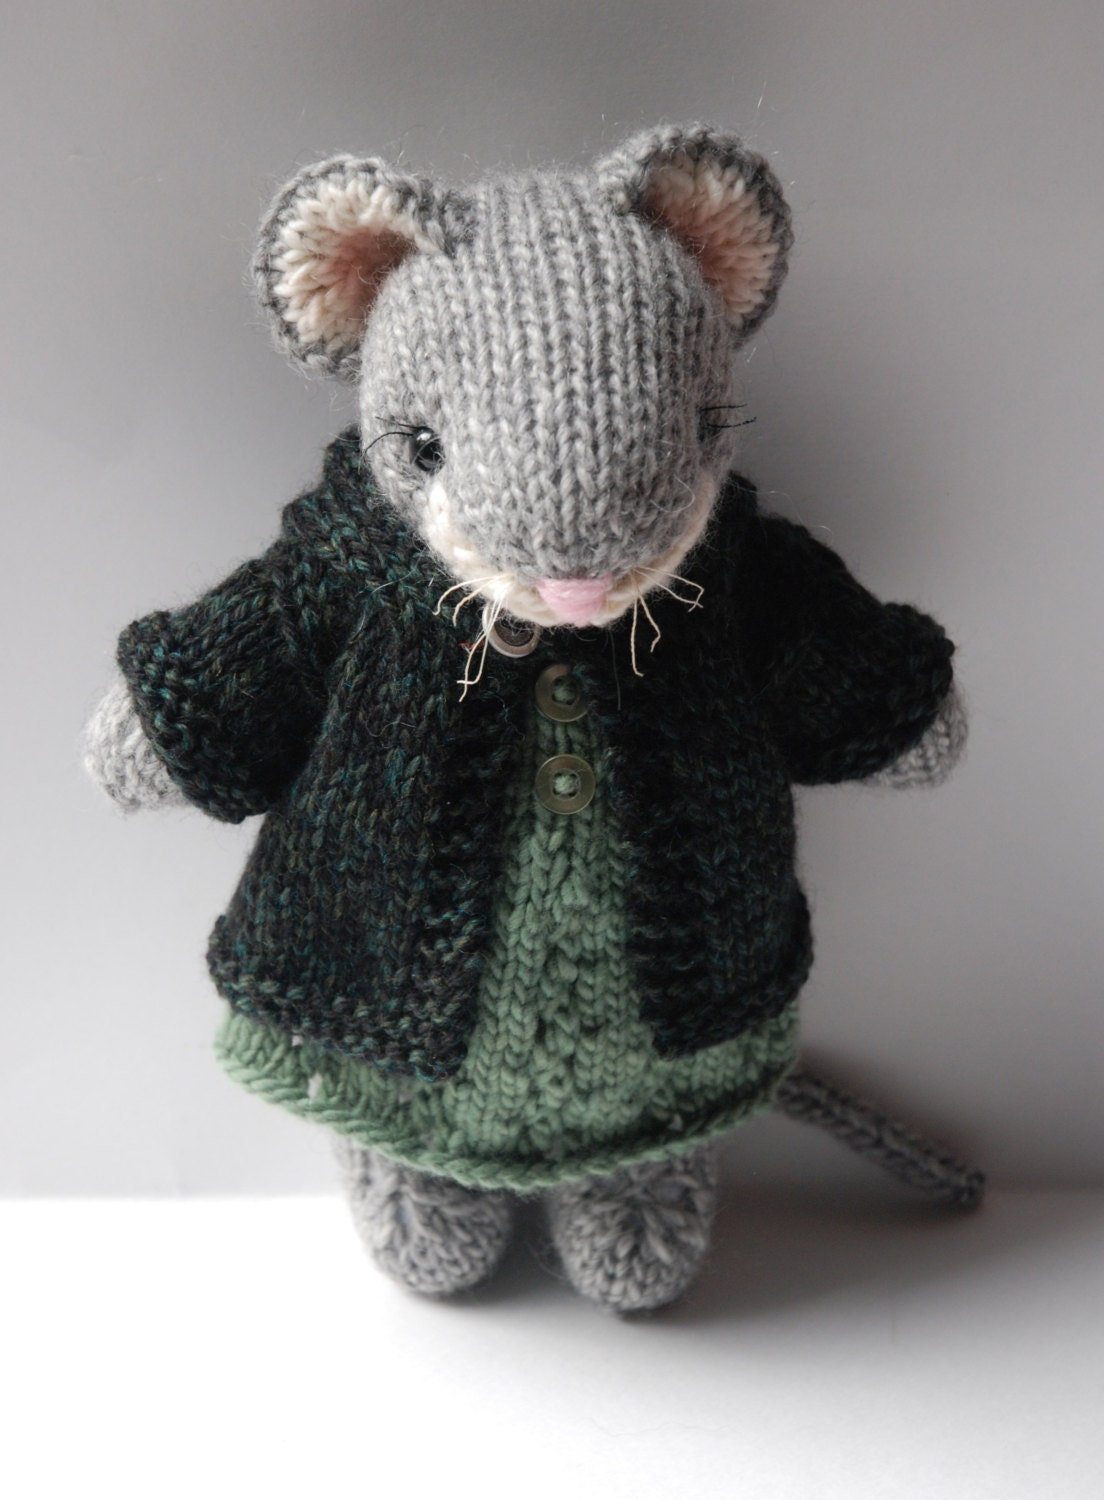 Knitted Woodland Mouse Toy in Autumn Dress and Tweed Hoodie